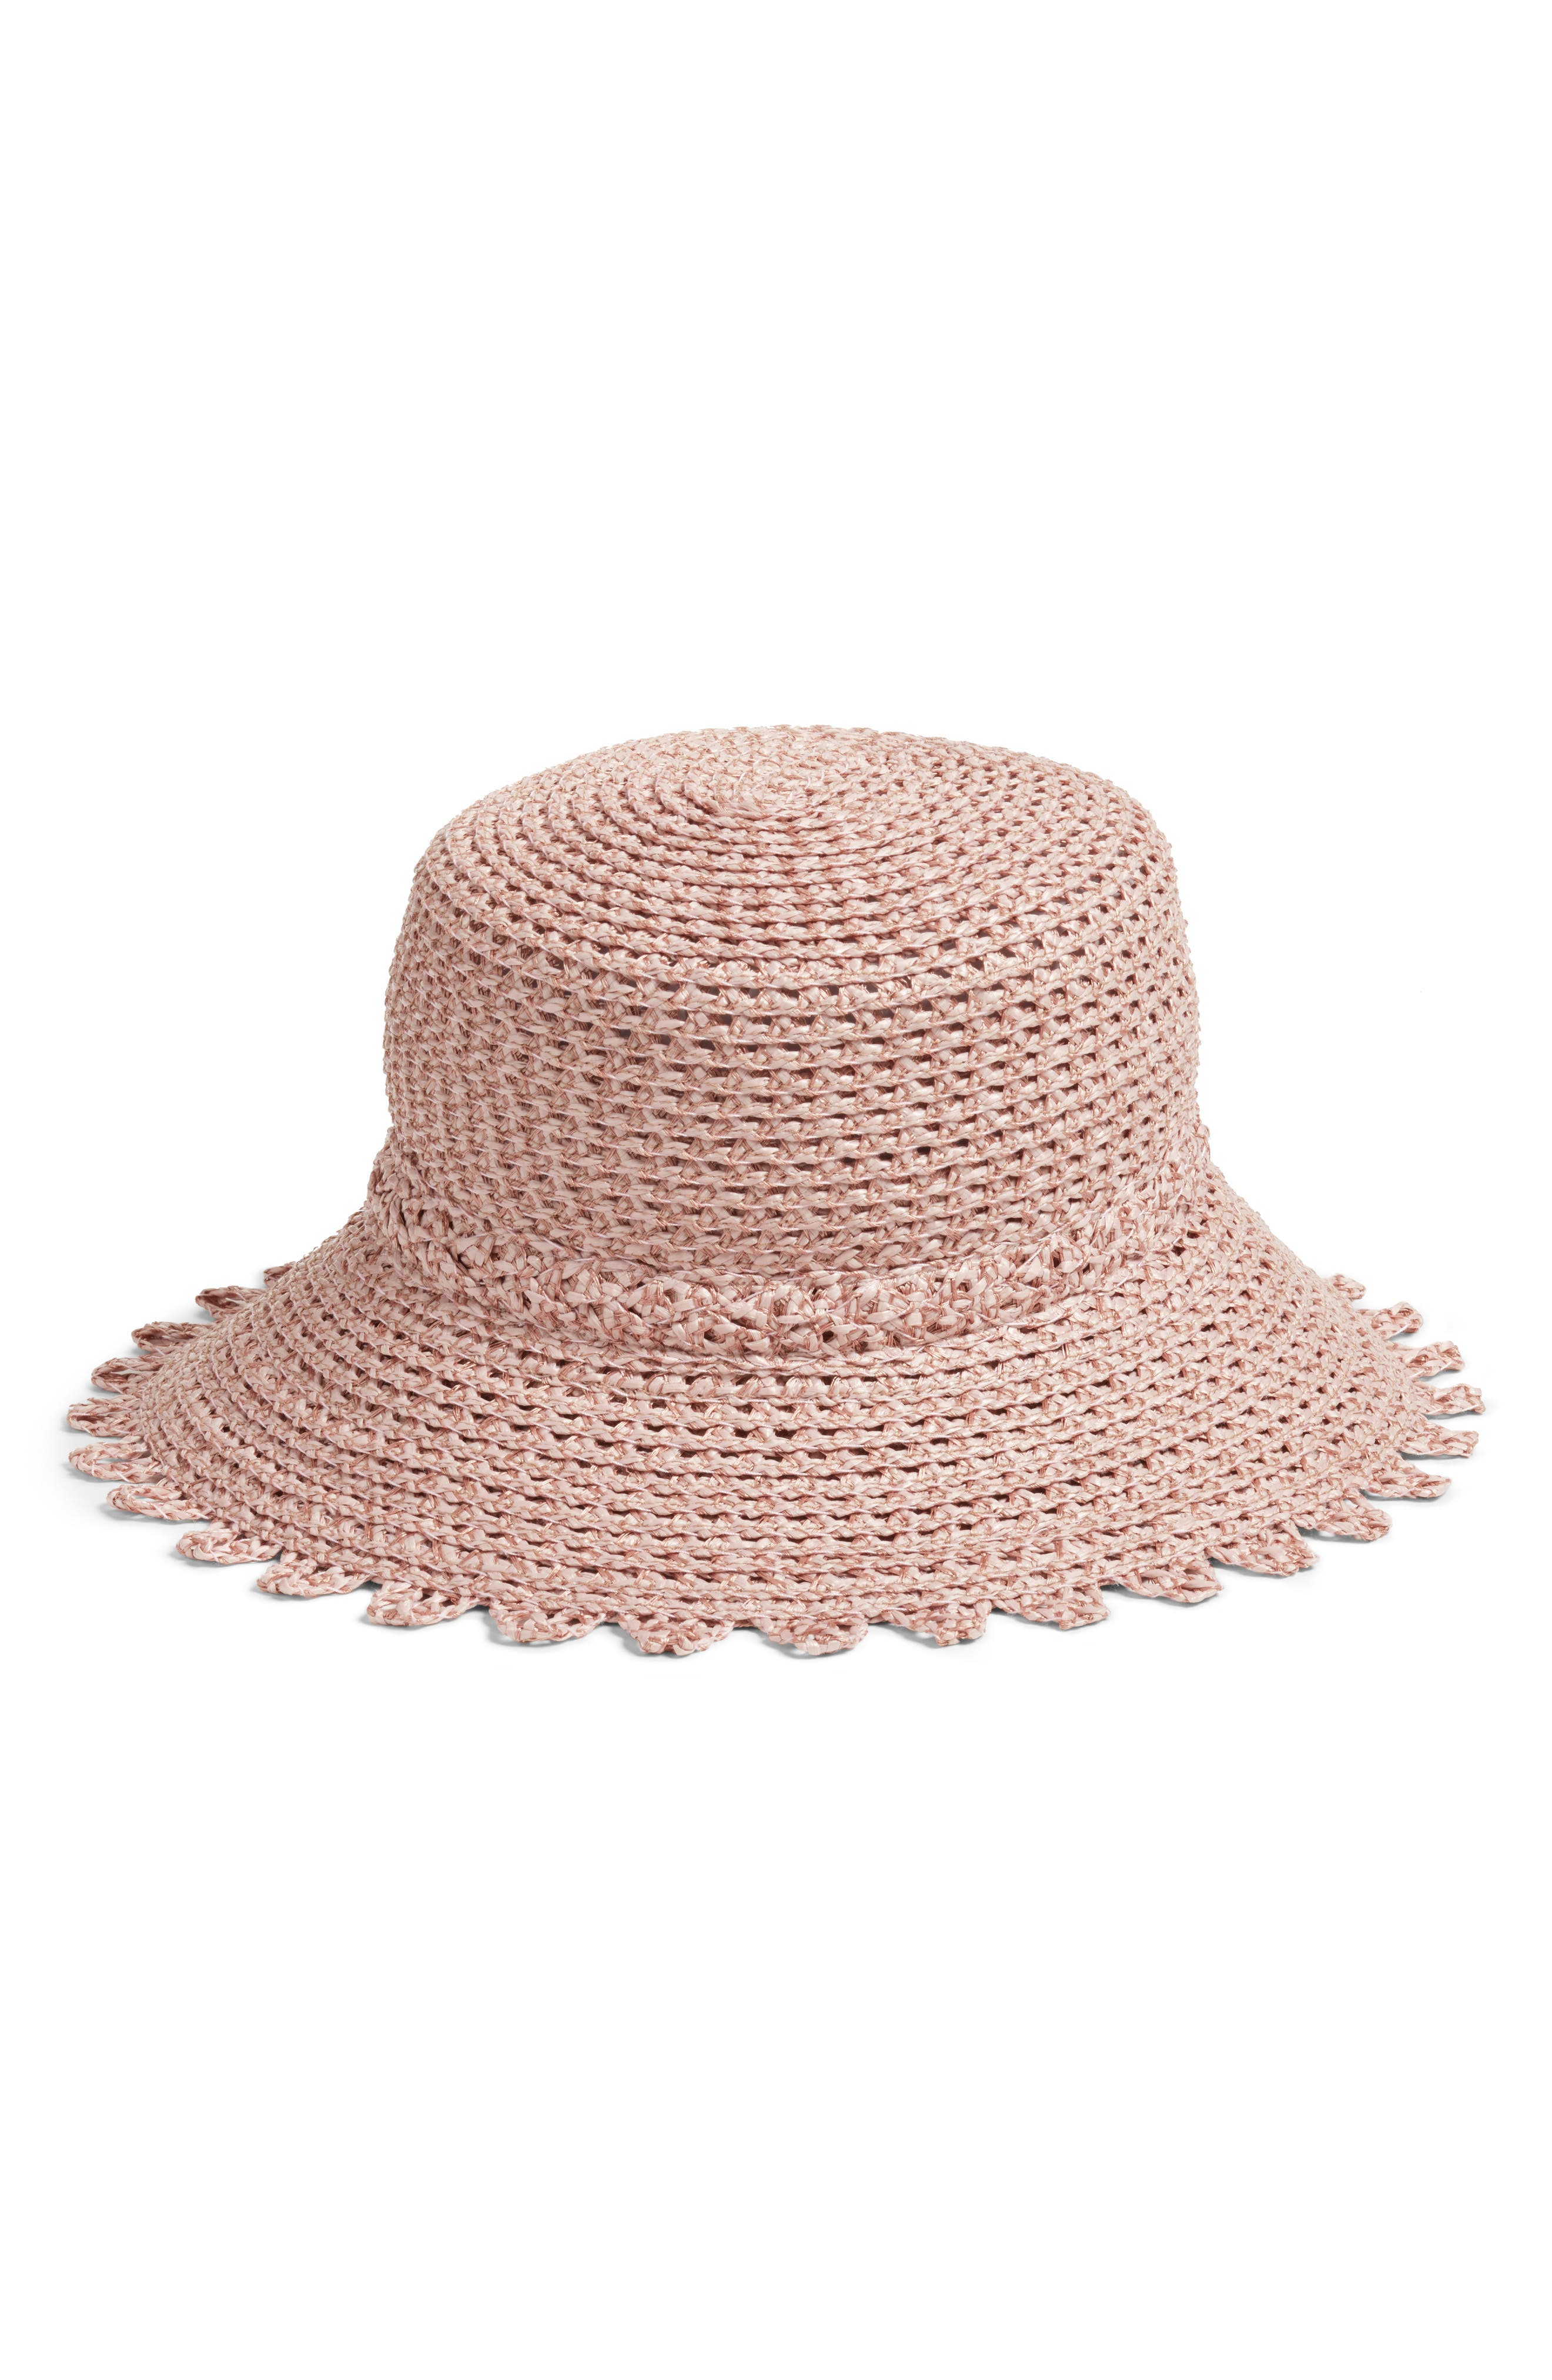 IBIZA SQUISHEE BUCKET HAT - PINK